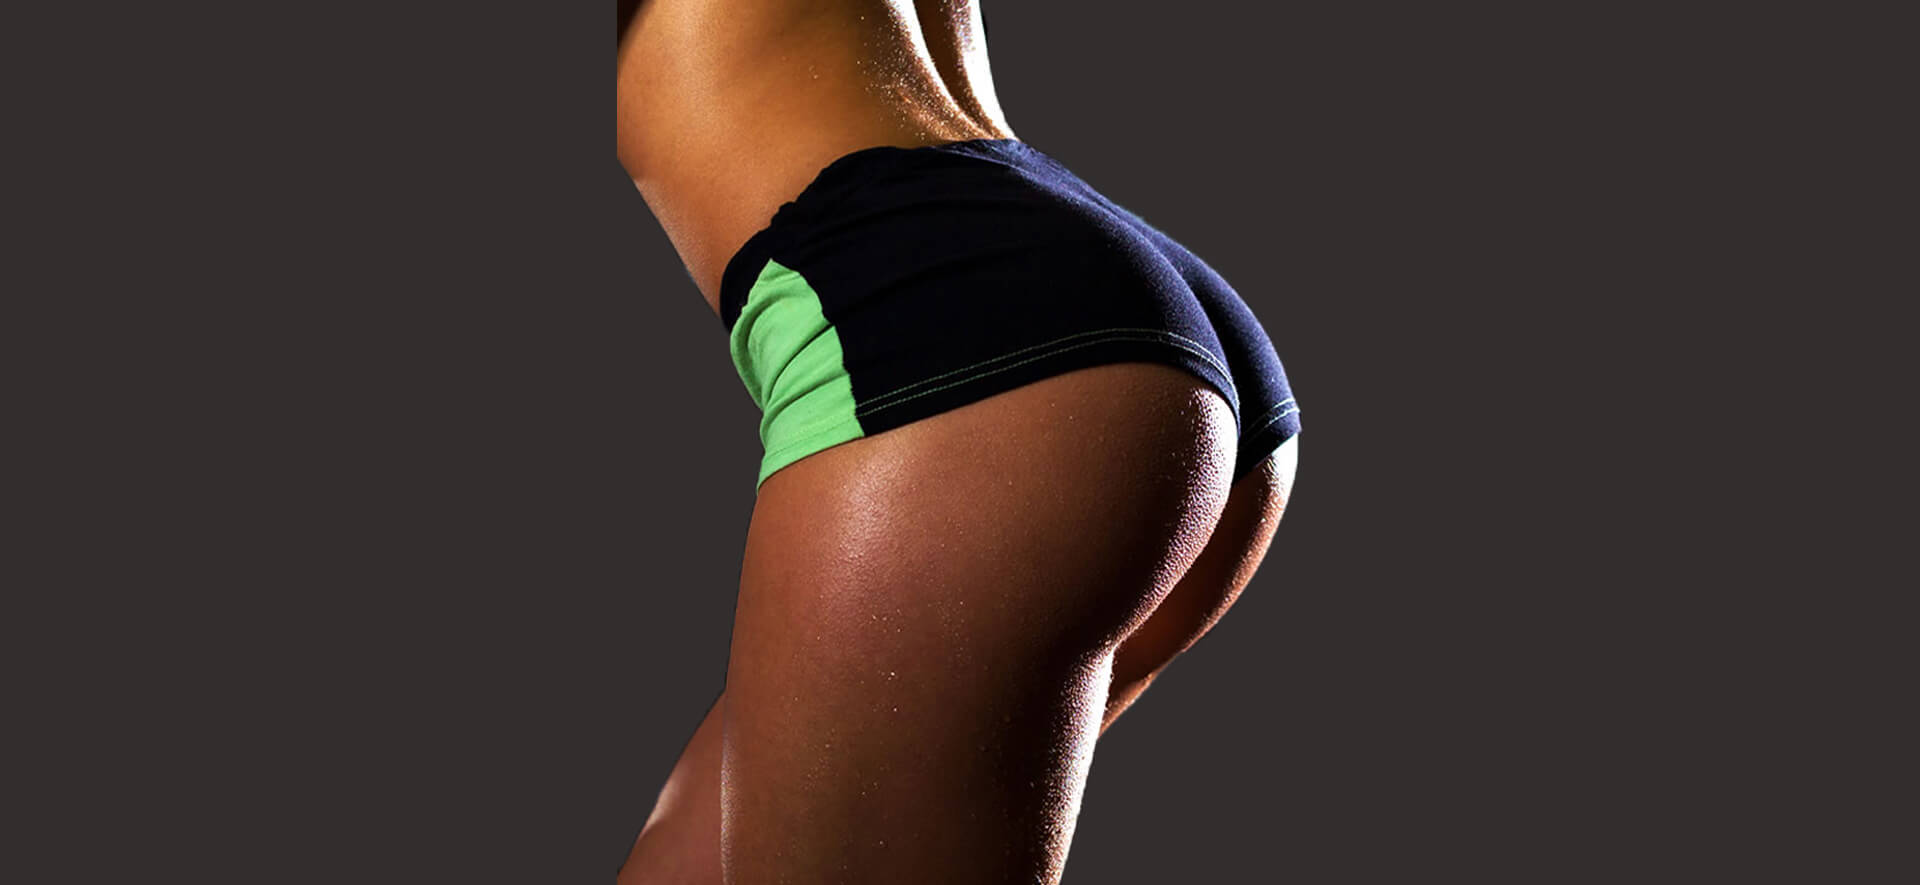 Buttocks of a healthy woman in perfect shape